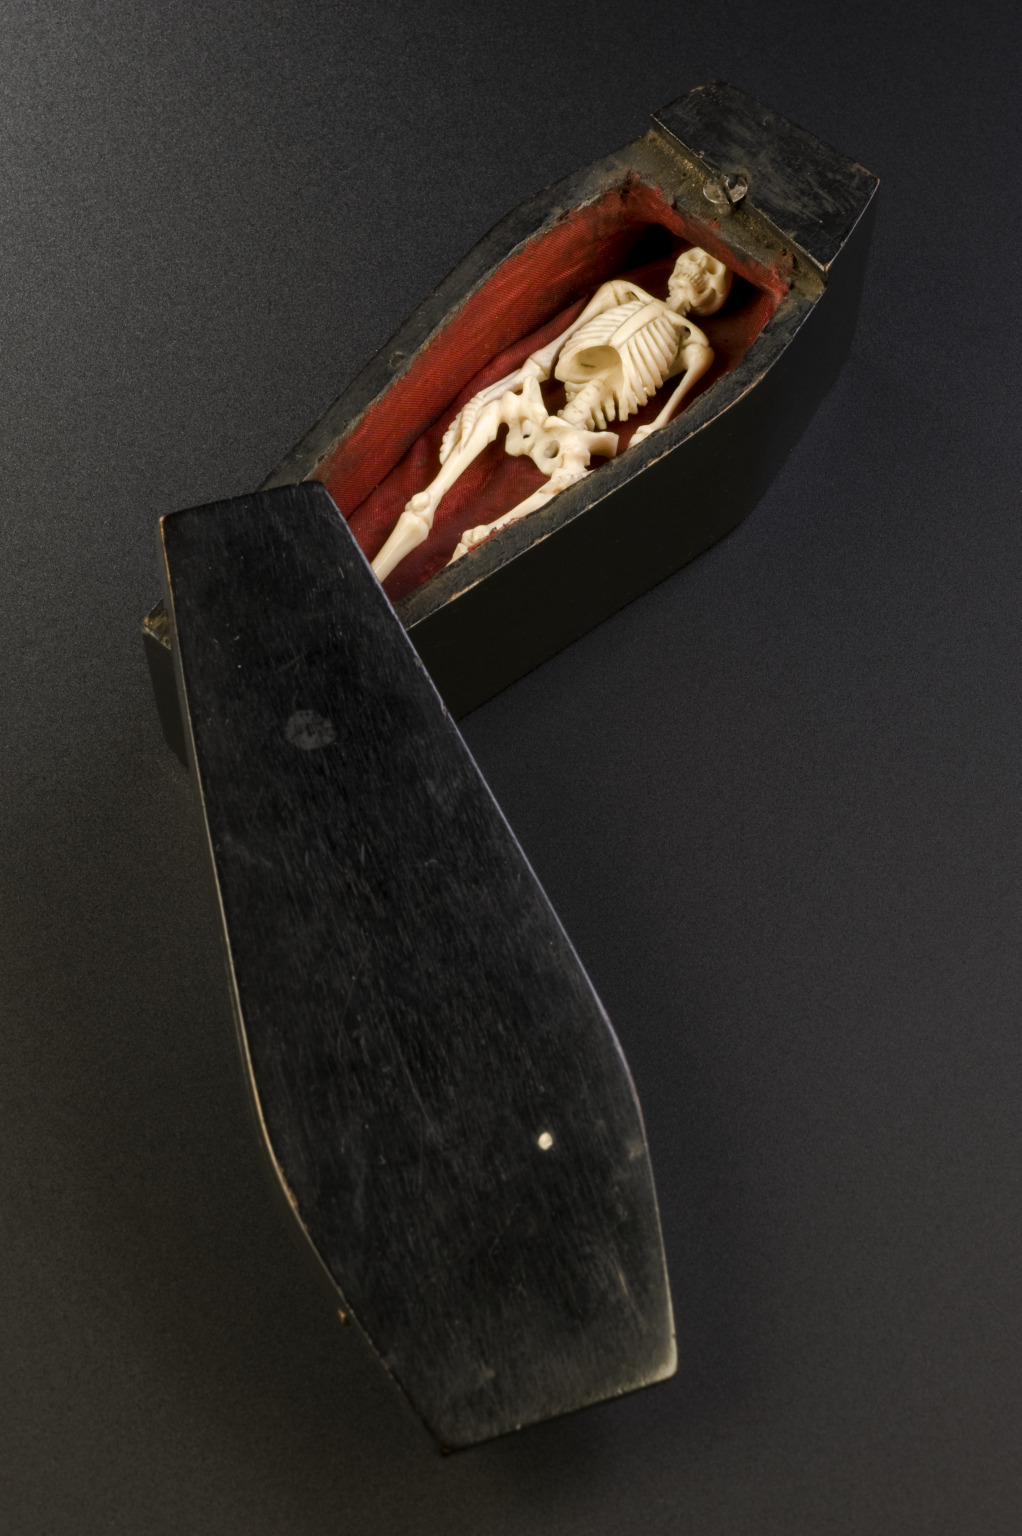 panicbeats:  Ivory skeleton suspended in a case, Europe, 1701-1800 Memento mori statues were used to remind people of the shortness of human life and the uselessness of material luxuries. This ivory model of a skeleton is suspended in its case. The door can be opened to reveal the skeleton.